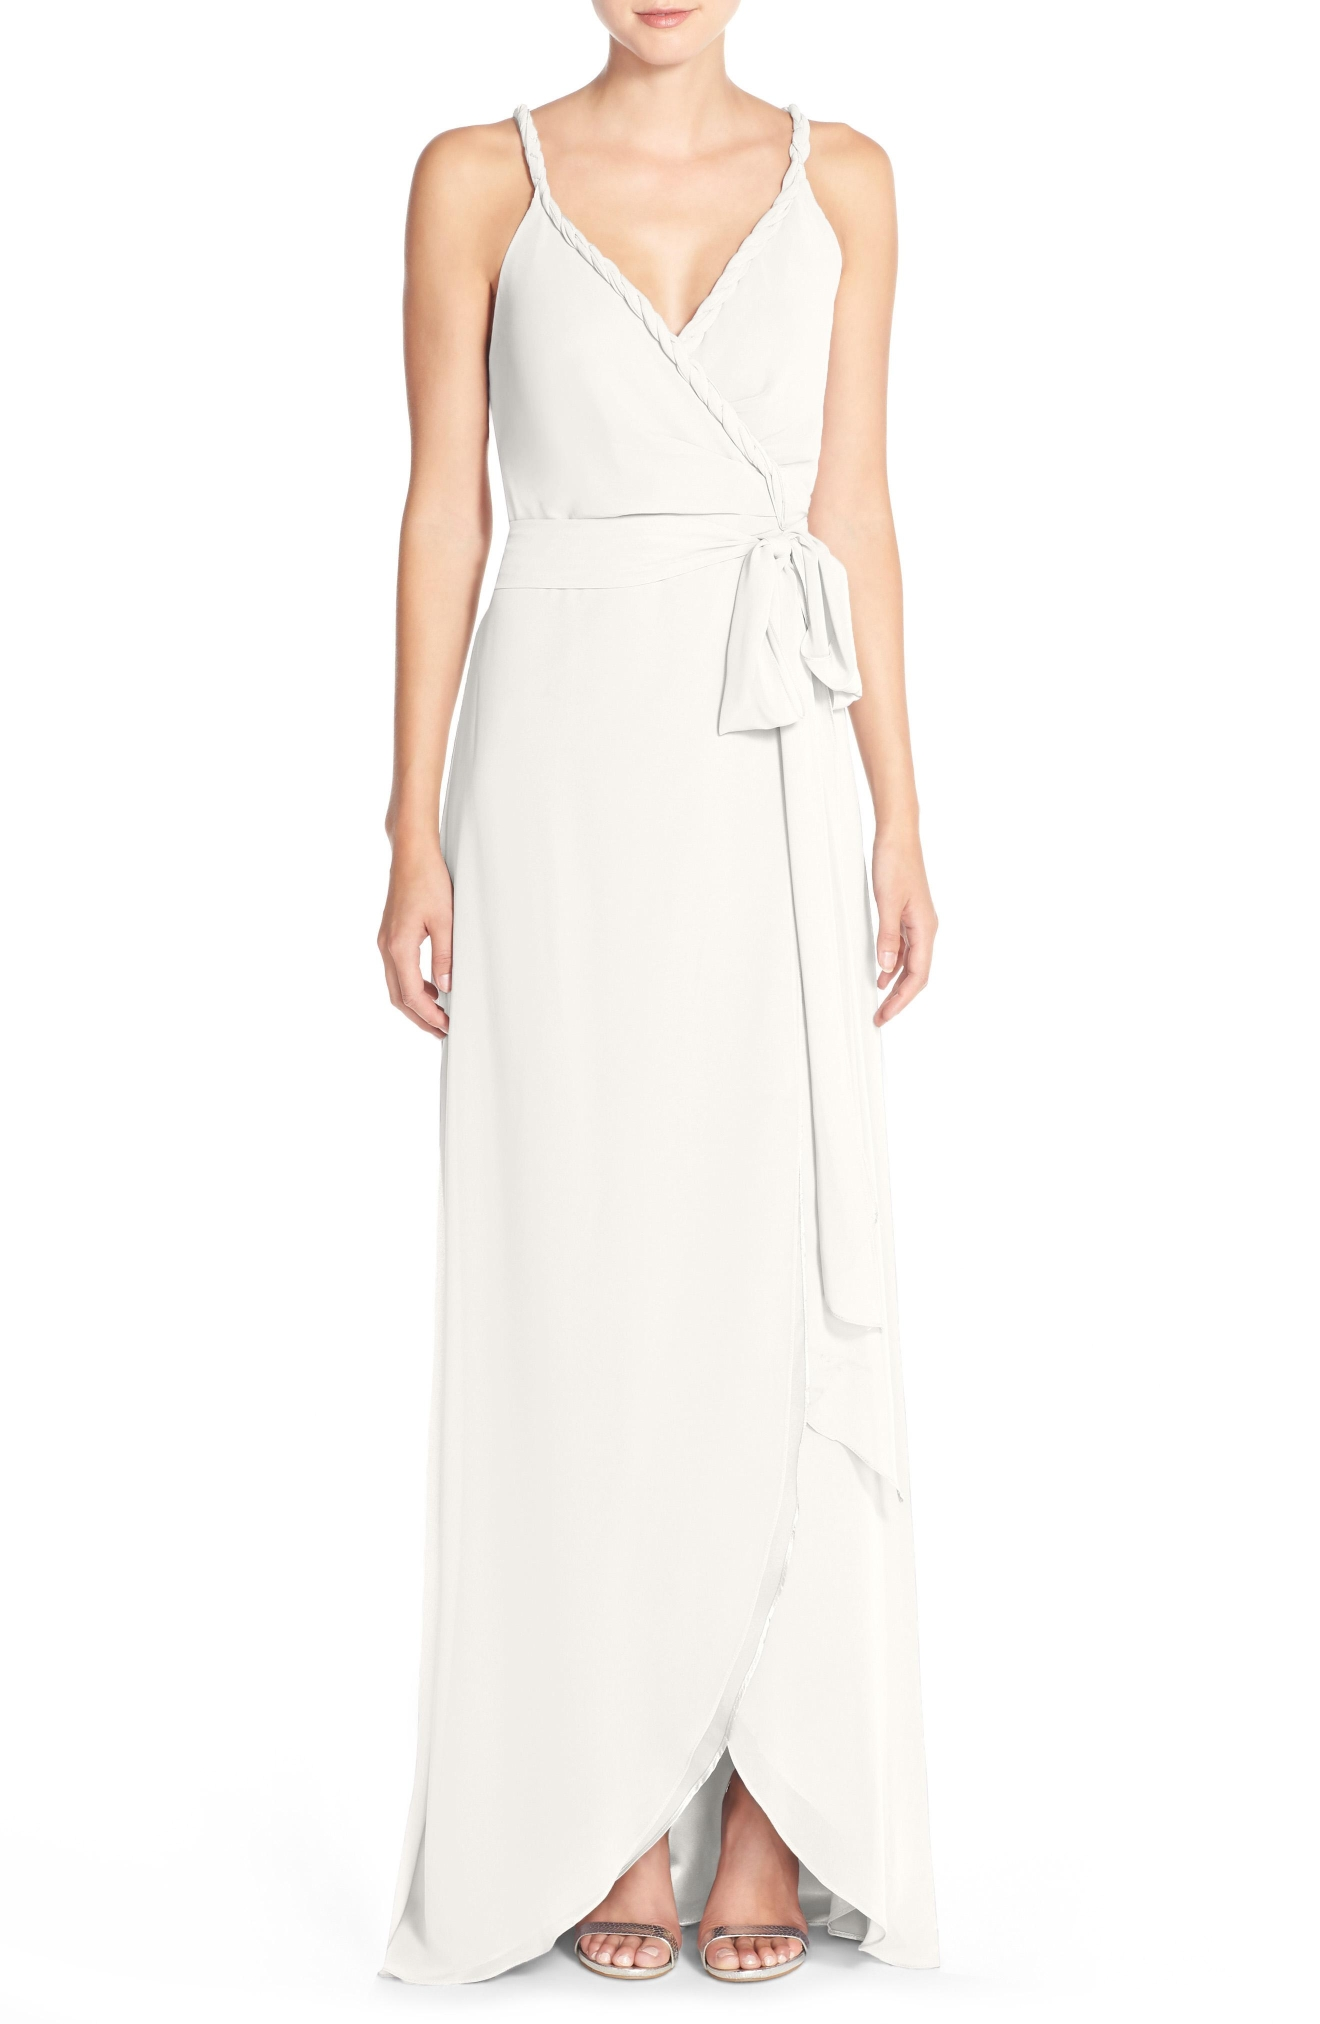 Ceremony by Joanna August 'Parker' Twist Strap Chiffon Wrap Gown, $258, Nordstrom.com (Image: Courtesy Nordstrom)